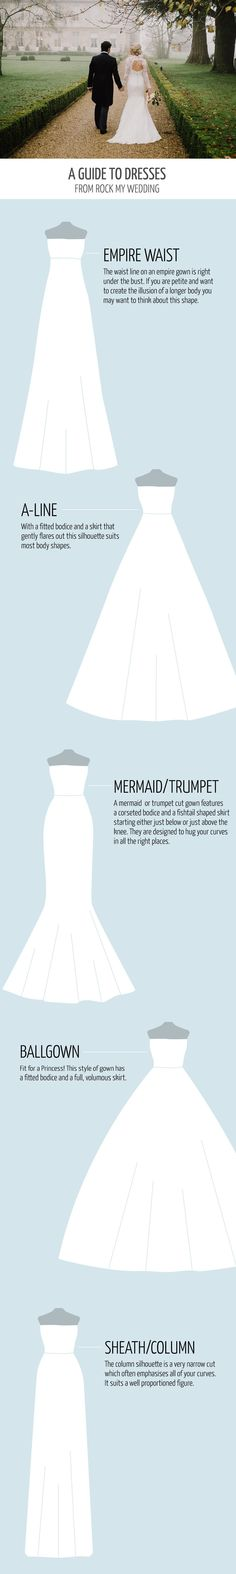 A Guide To Choosing Your Wedding Dress from www.edressit.com